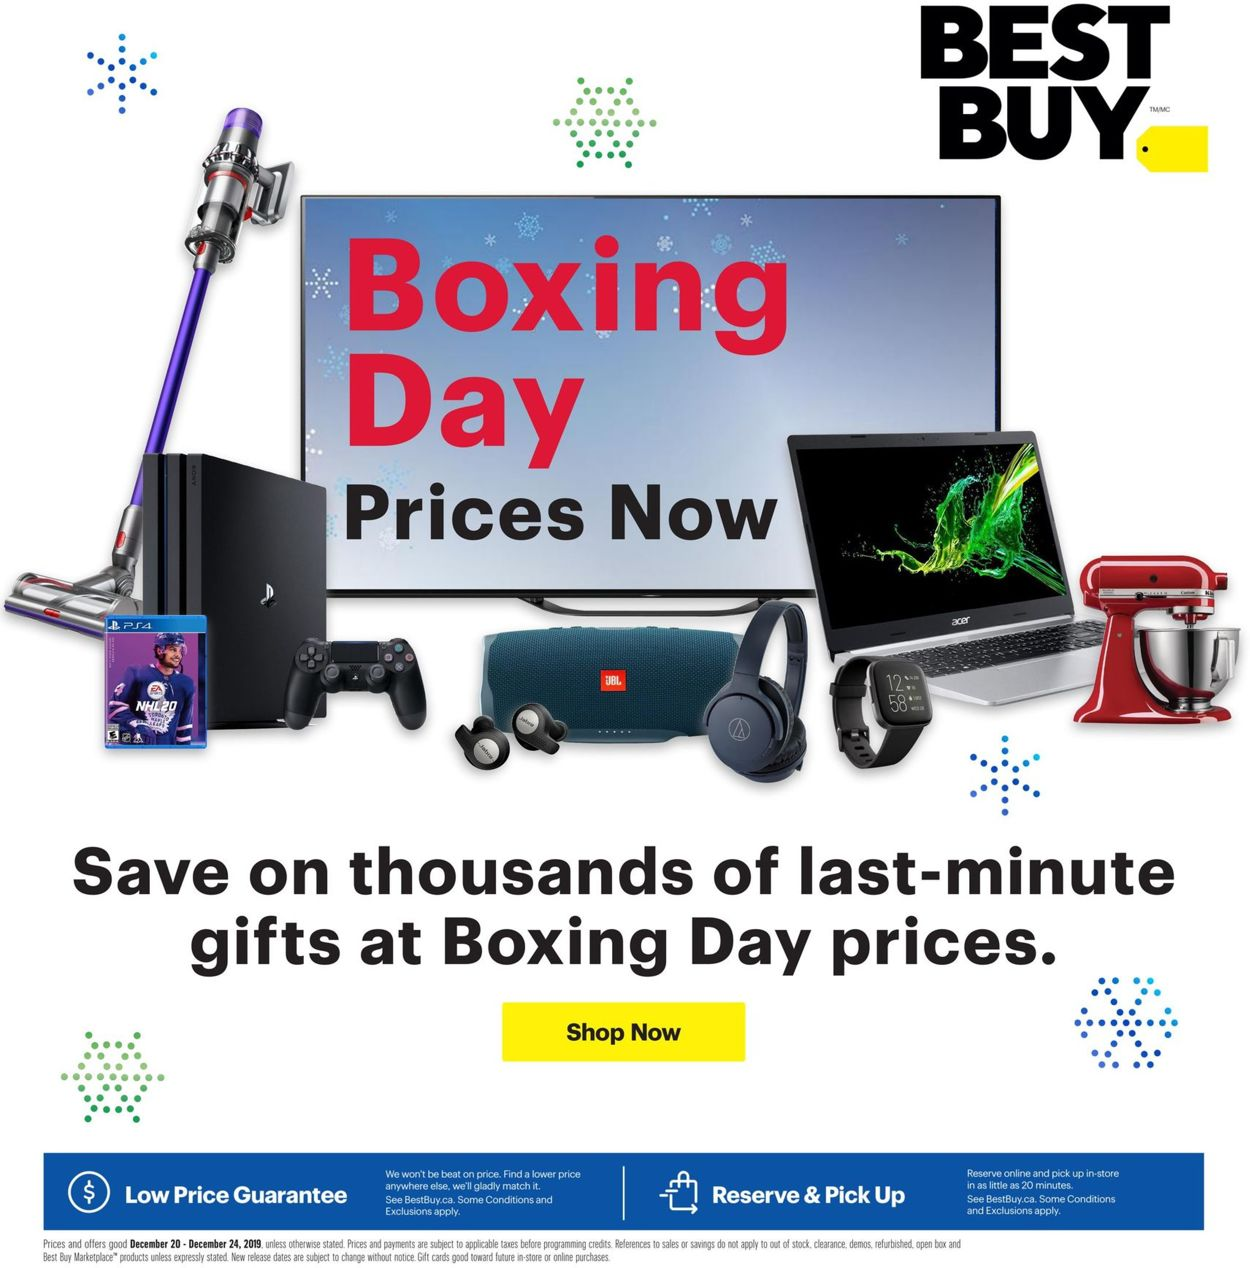 Best Buy - BOXING DAY 2019 SALE Flyer - 12/20-12/24/2019